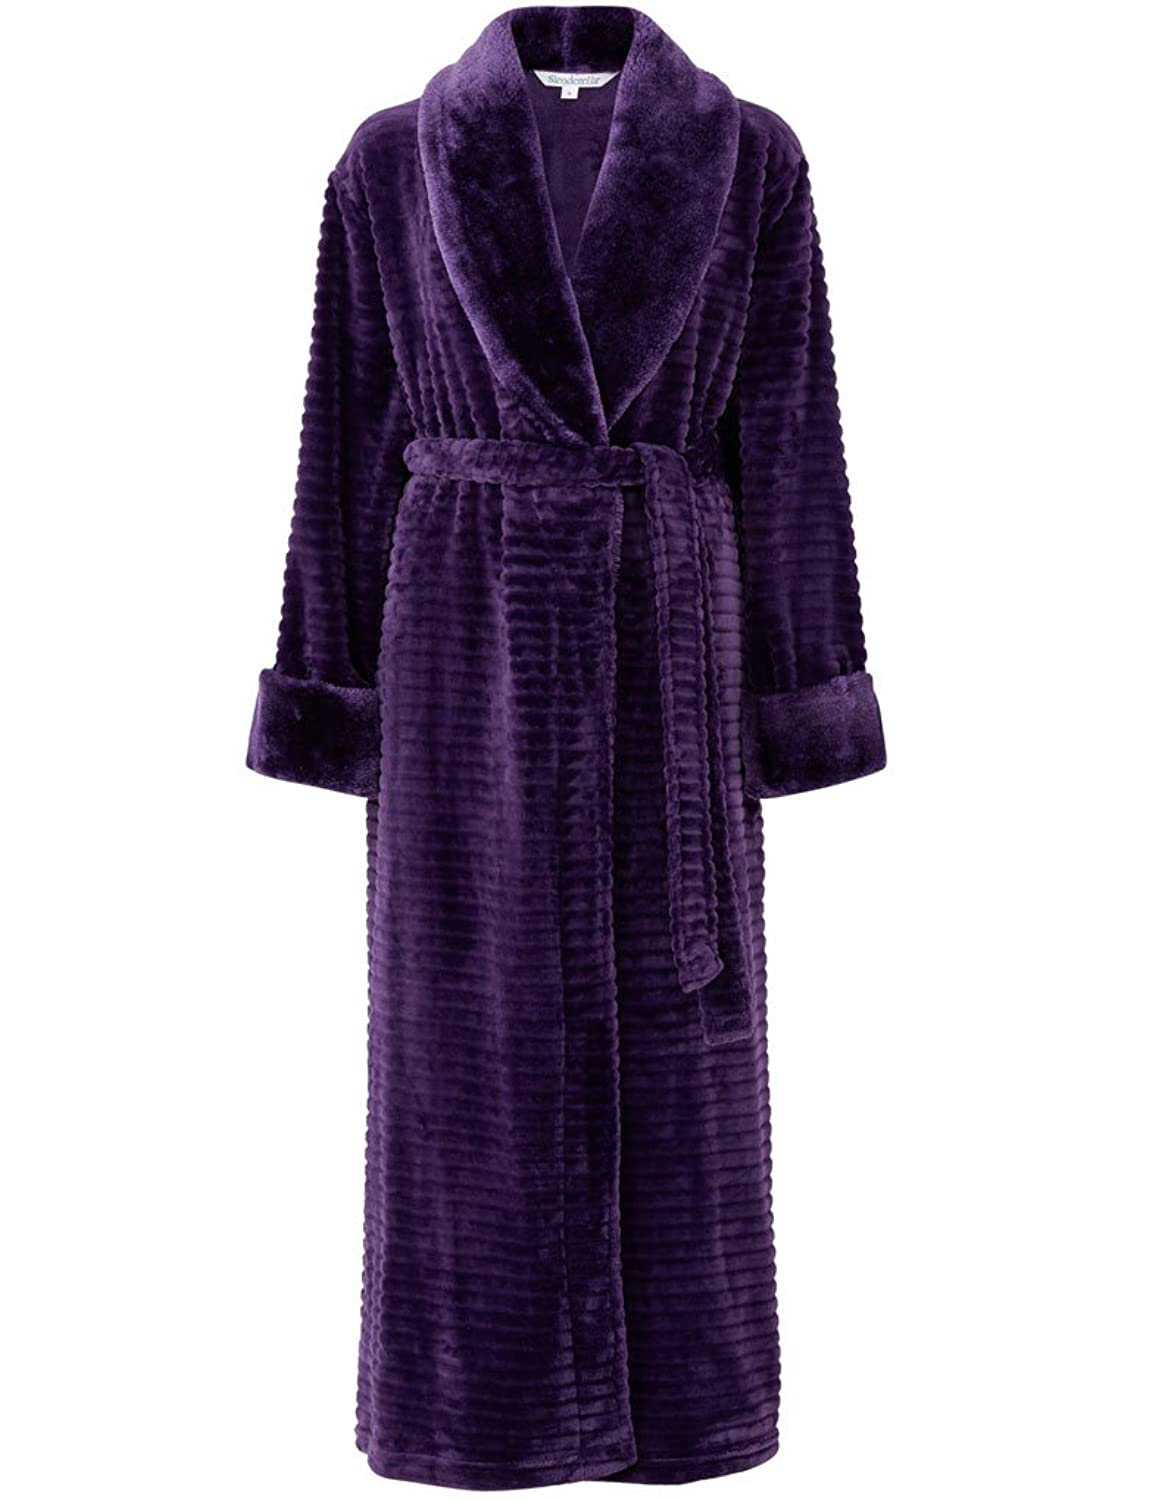 "Slenderella Purple 52"" Long Sleeve Faux Fur Robe HC6342"